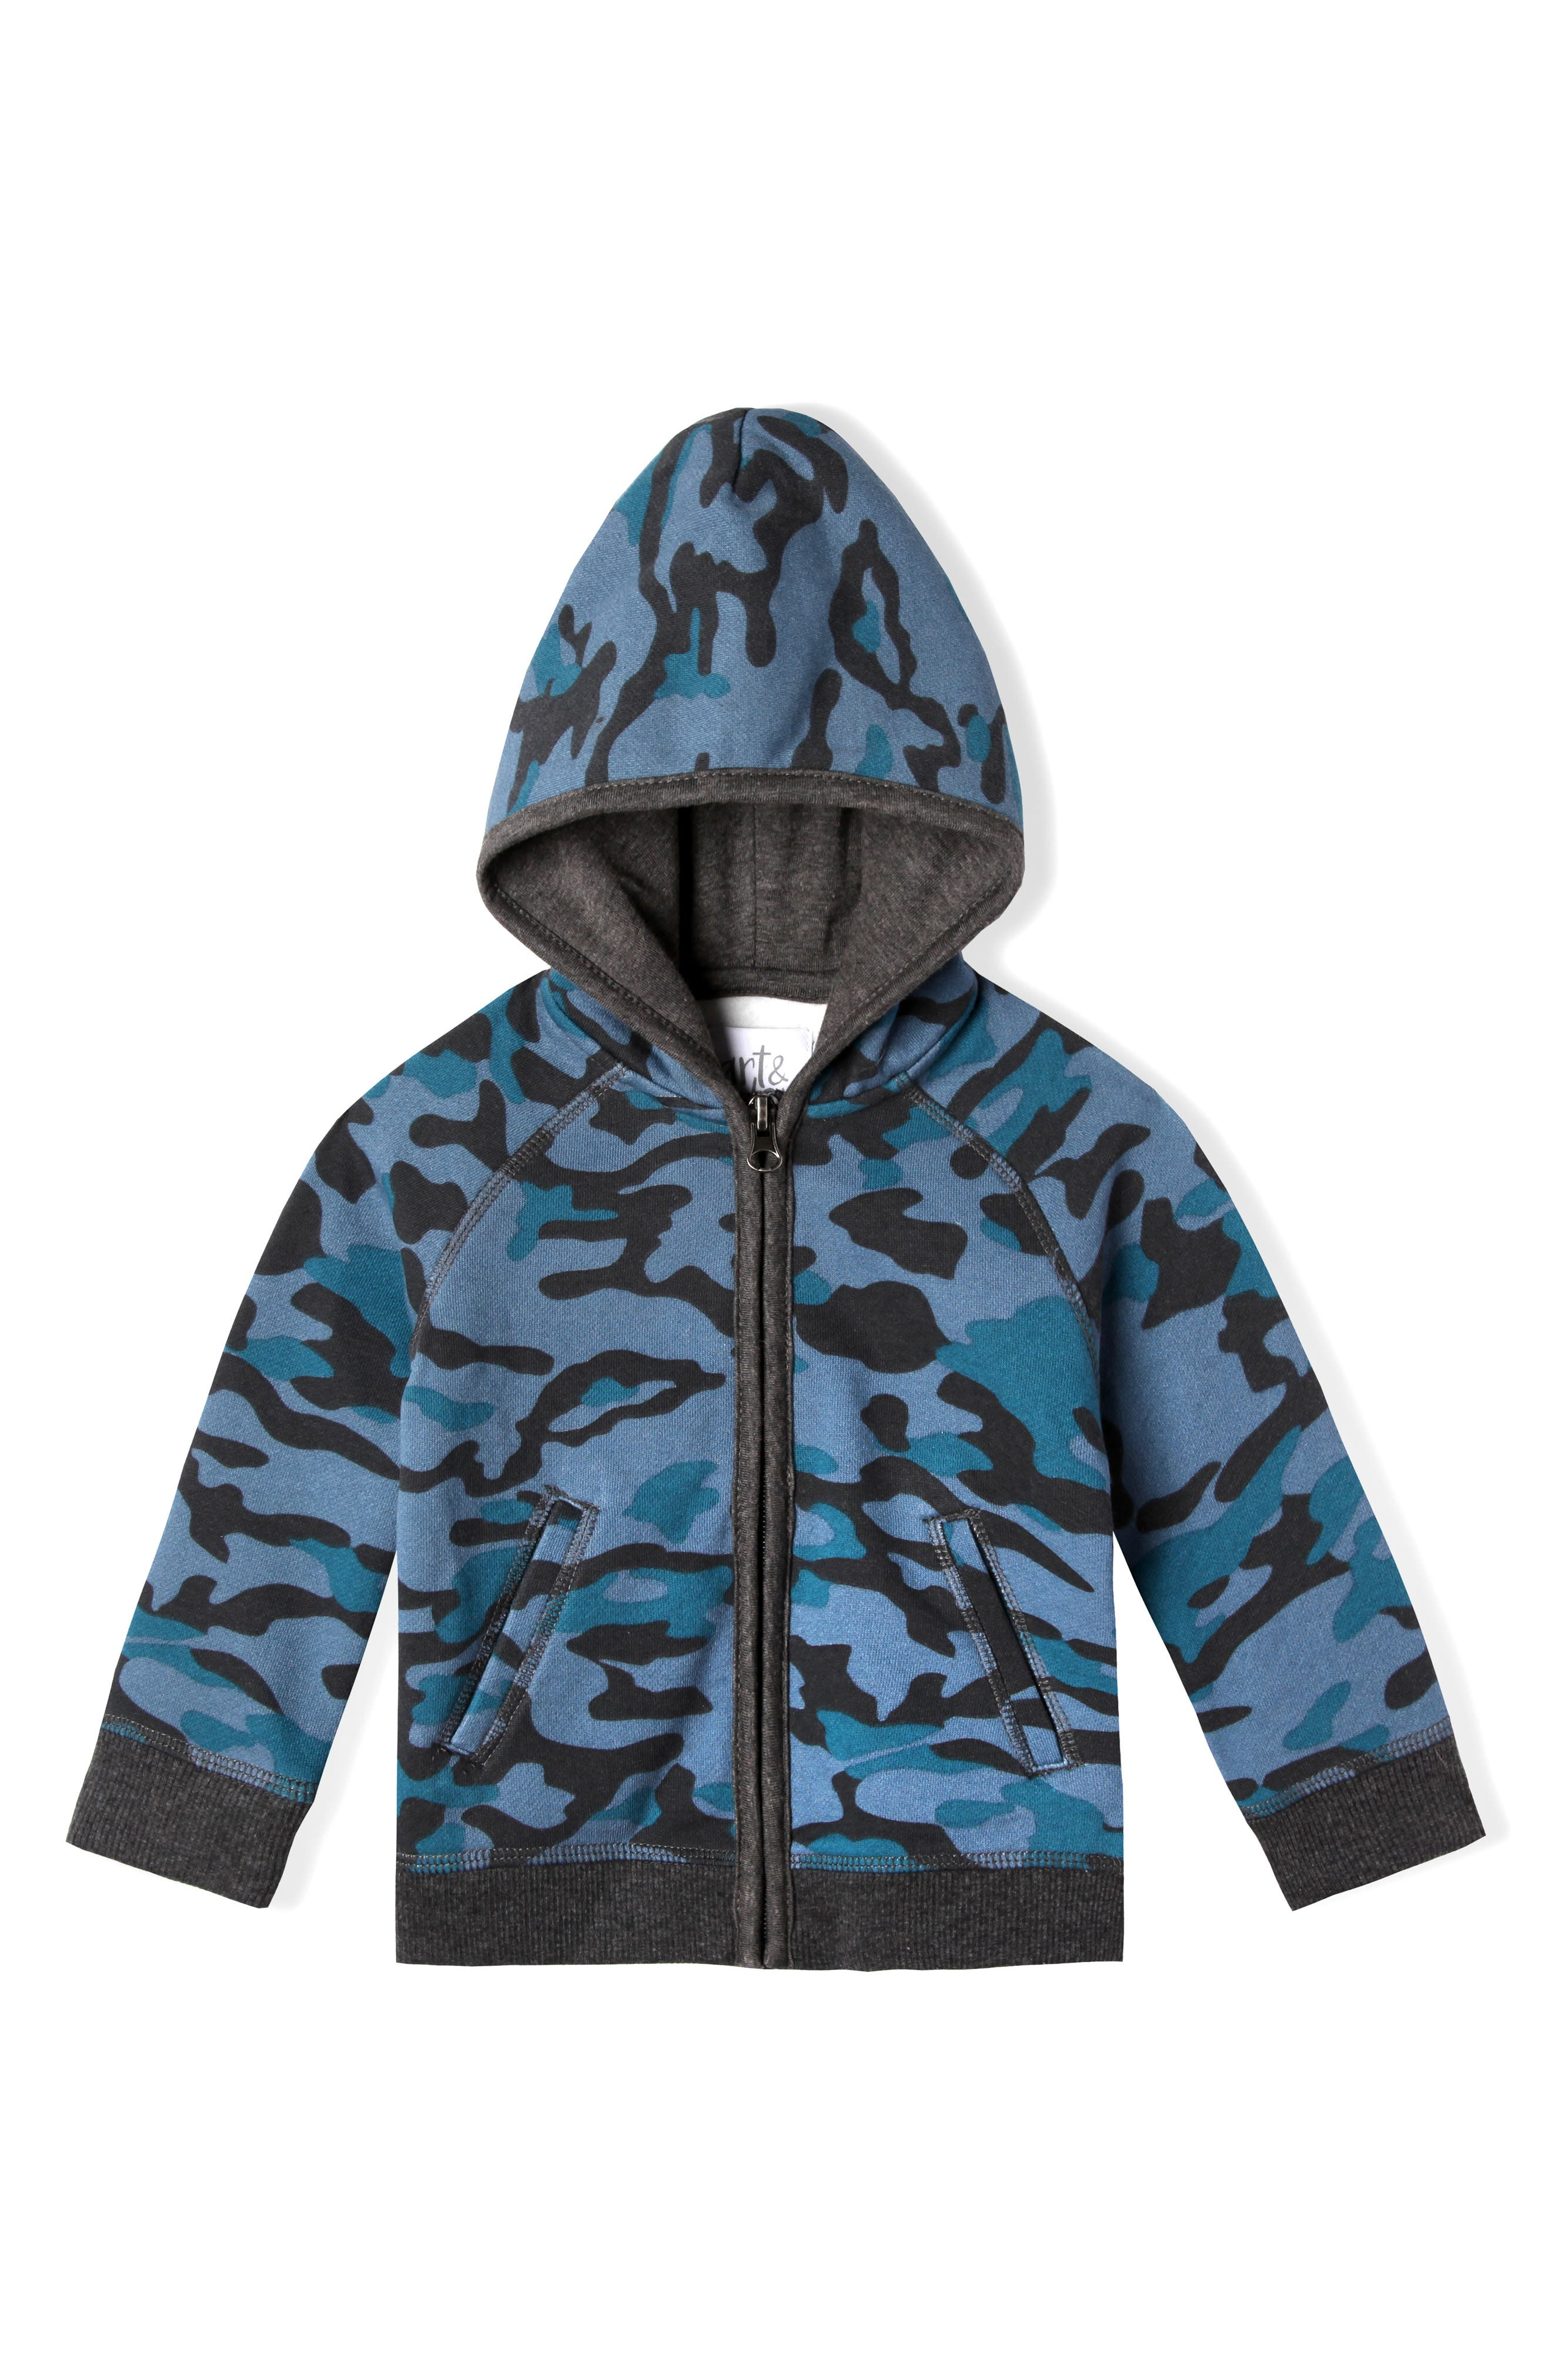 Henry Organic Cotton Hoodie,                             Main thumbnail 1, color,                             416